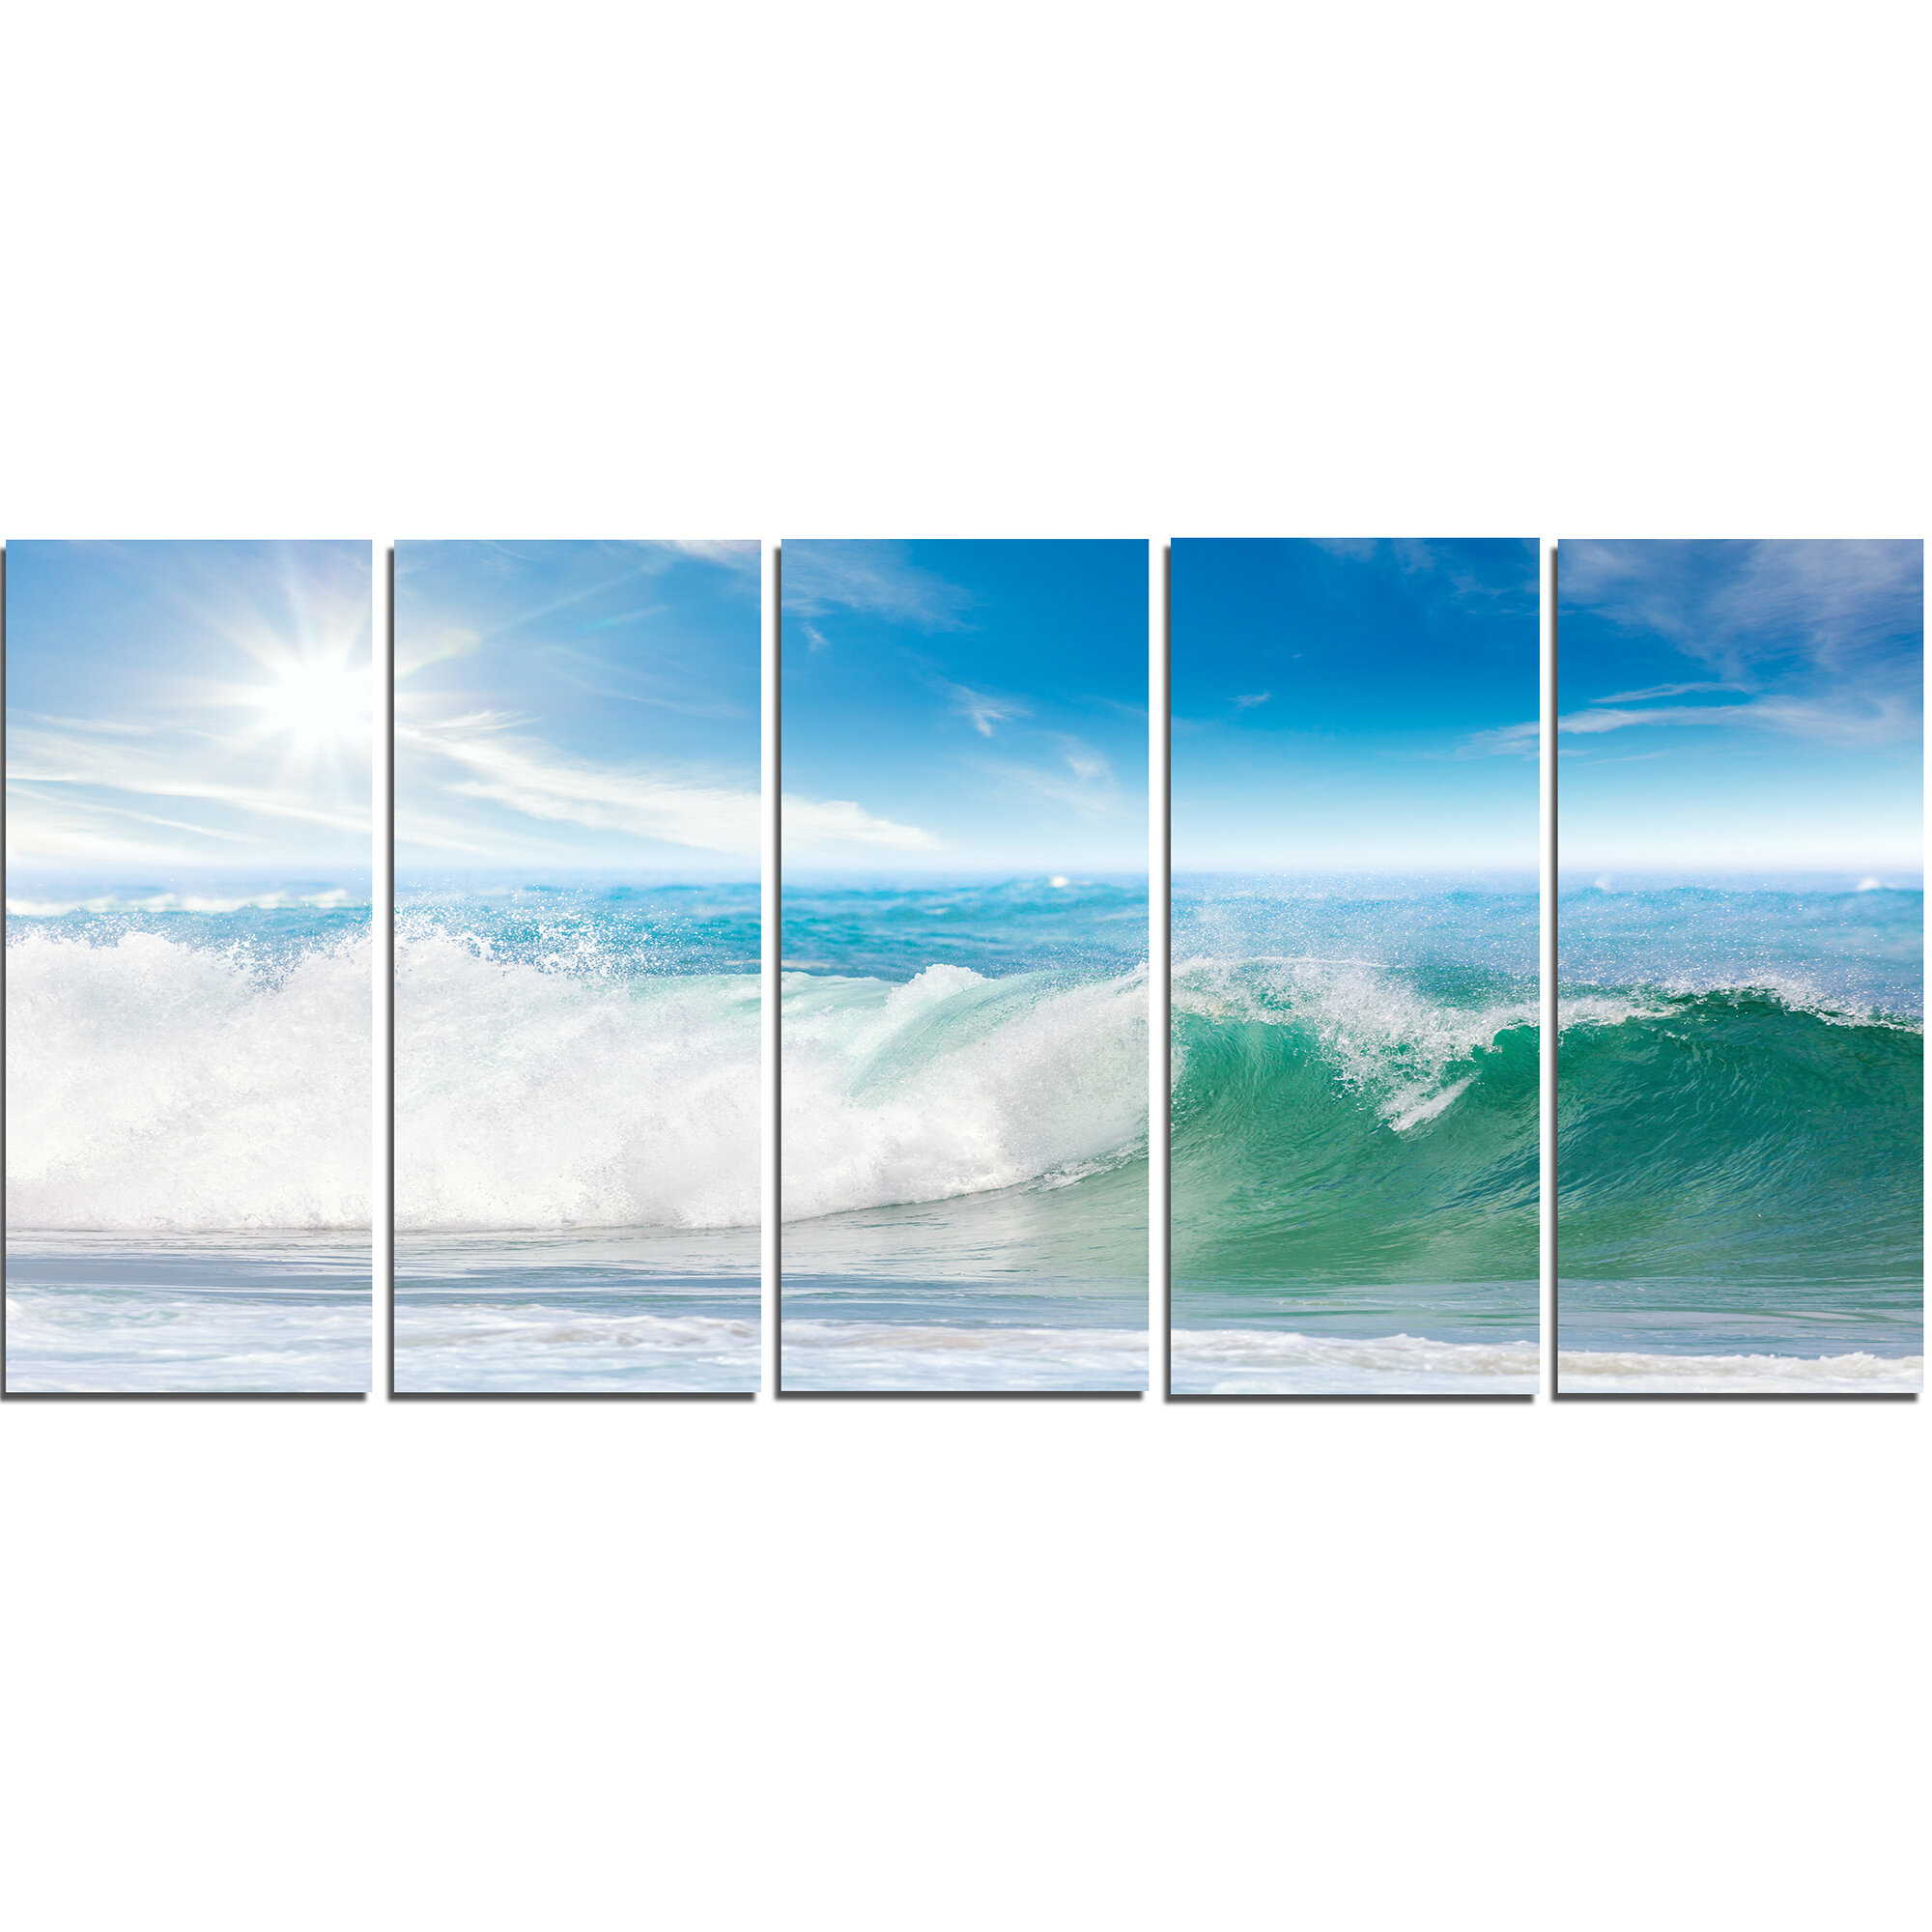 Designart White And Blue Waves Under Sun 5 Piece Photographic Print On Wrapped Canvas Set Wayfair